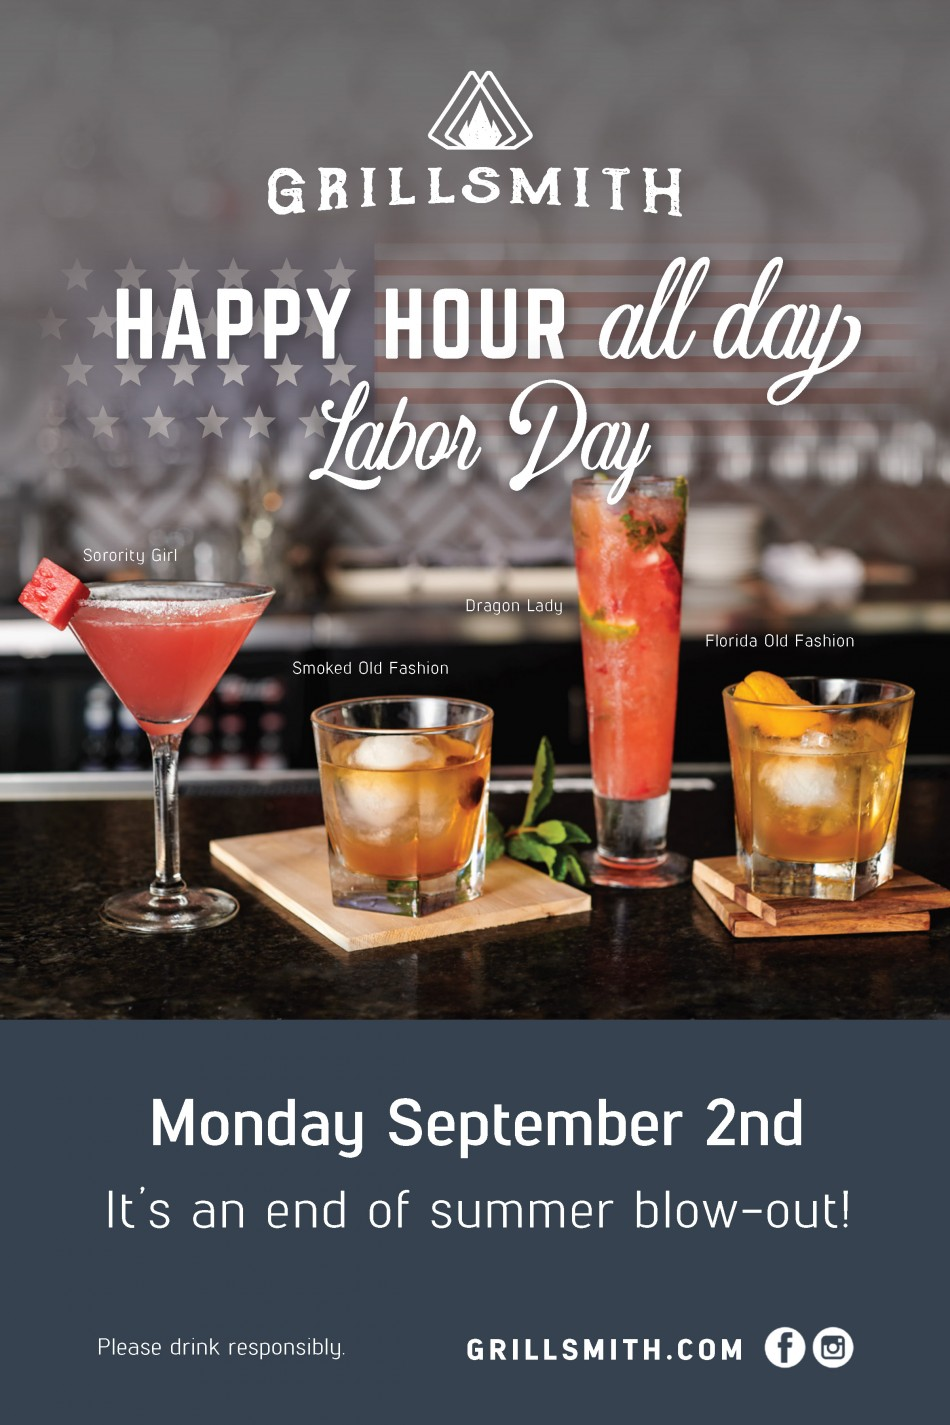 Happy Hour All Day at Grillsmith